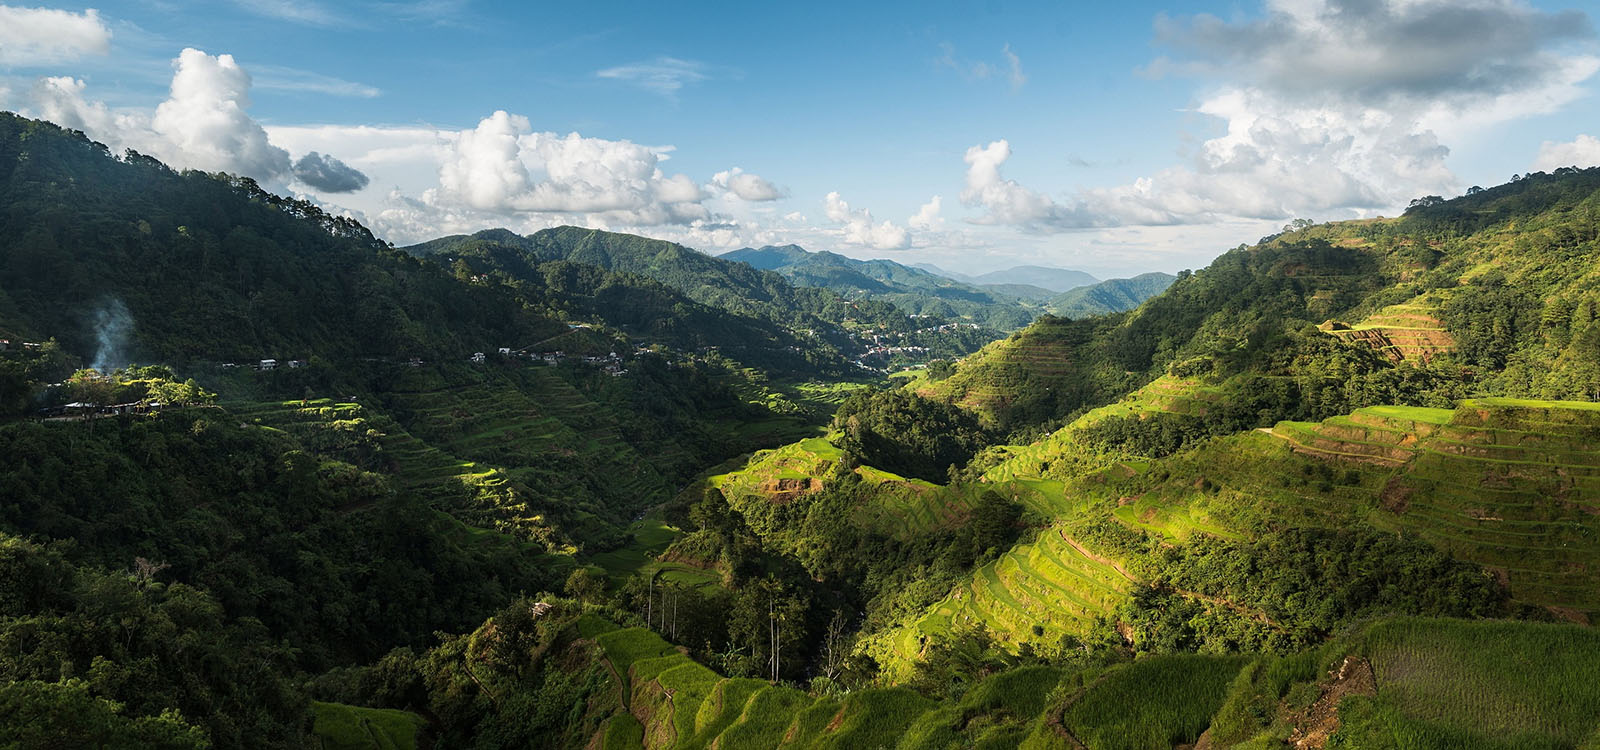 733226-amazing-nature-wallpaper_0003_6933082-philippines-countryside